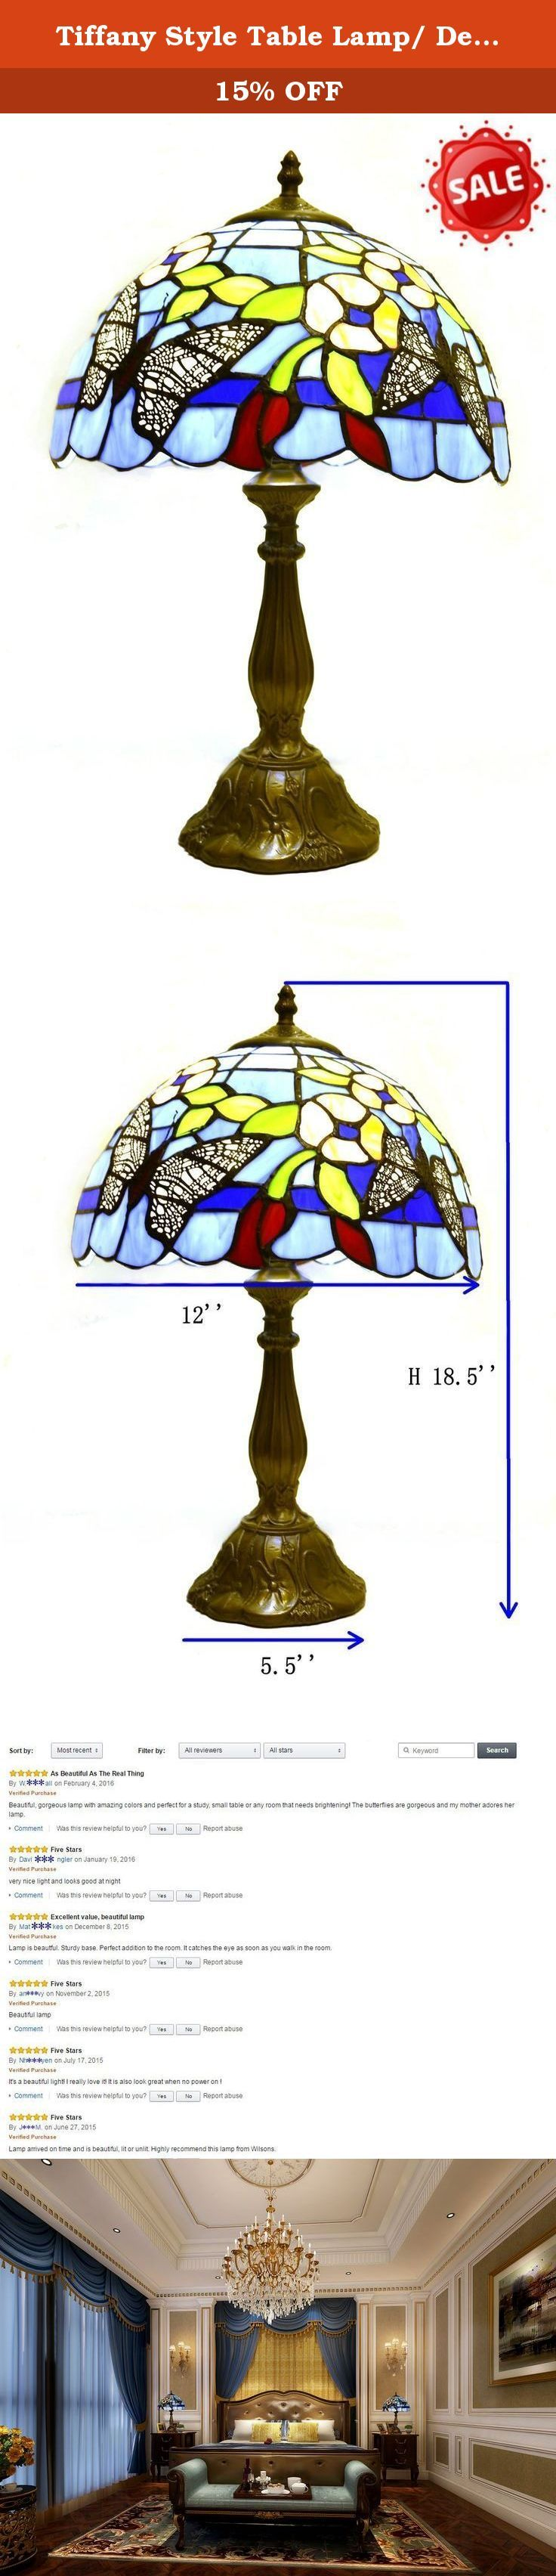 Tiffany Style Table Lamp/ Desk Lamp/ Wilsons Lighting/ NAPLES Series/ Home & Office Decor Collection/ 18.5 Inches Height/ Model G121468. NAPLES series Tiffany-style table lamp, it's an elegant addition to your room, makes painting, executive desk, sofa area, bedside, hallway, mini-bar, entertainment room, sun room or office more antique stylish. With floral motif reminiscent of verdant countrysides, the natural aesthetic forms perfectly to the Victorian elegance of Tiffany art glass. This...